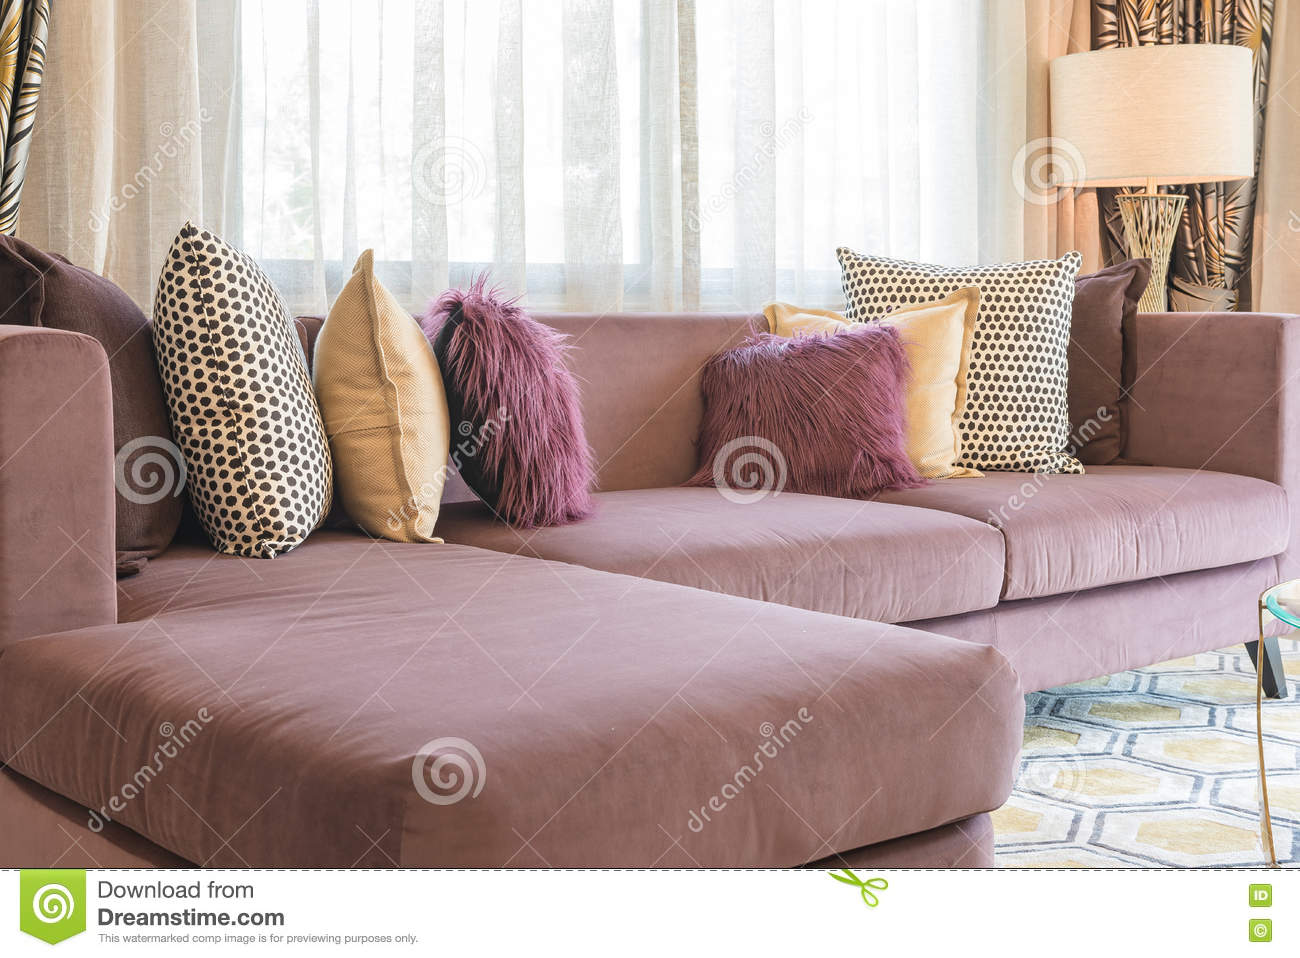 Luxury living room design with purple sofa and set of pillows